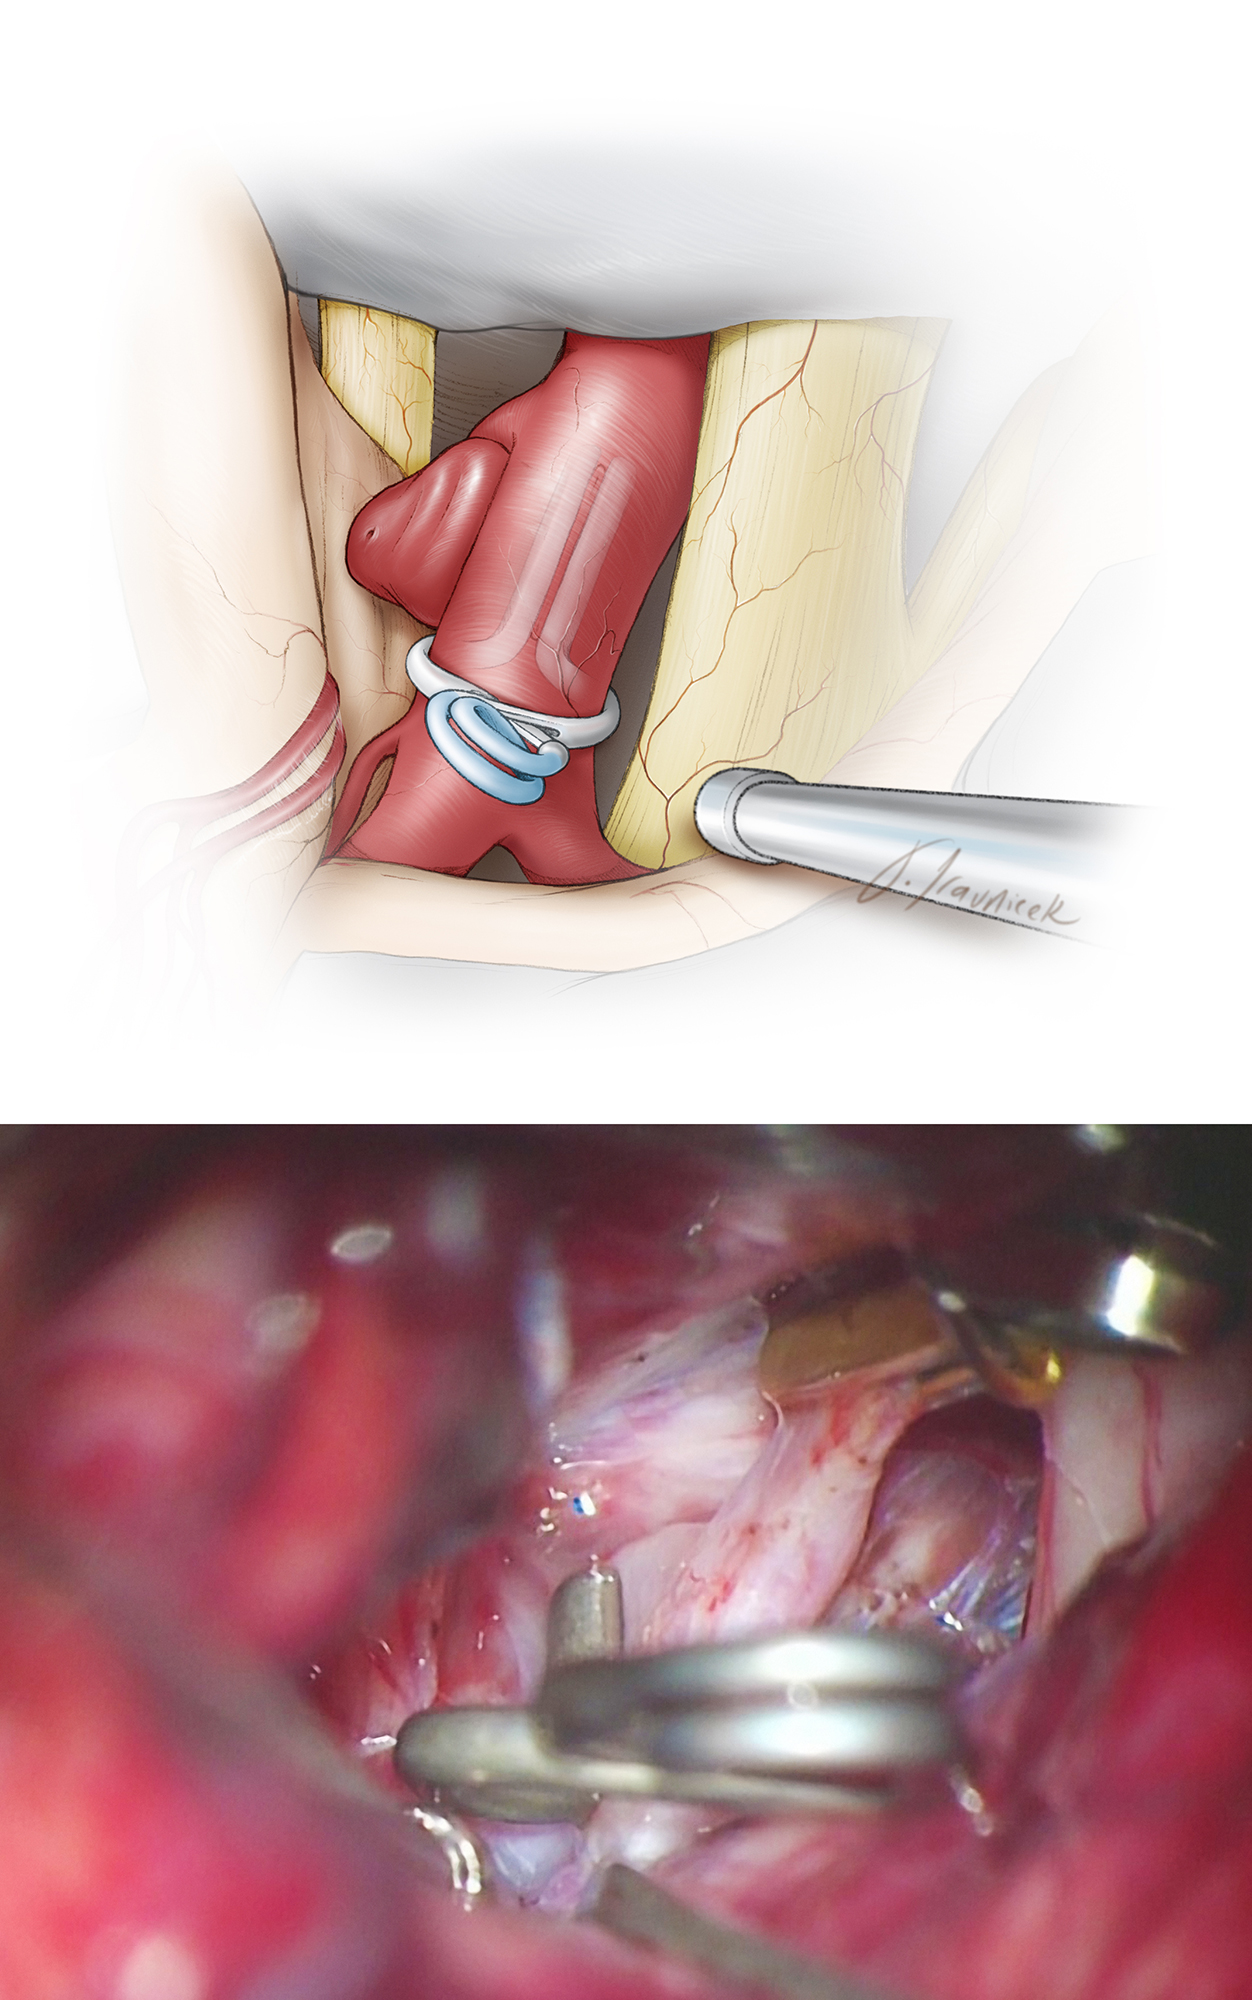 Figure 21: An operative view of the final clip construct for a posterior-projecting PCoA aneurysm. Care must be taken to ensure that neither the PCoA nor its medial thalamoperforators are inadvertently included in the clip blades. The tip of the blades should not compromise the PCoA's origin.